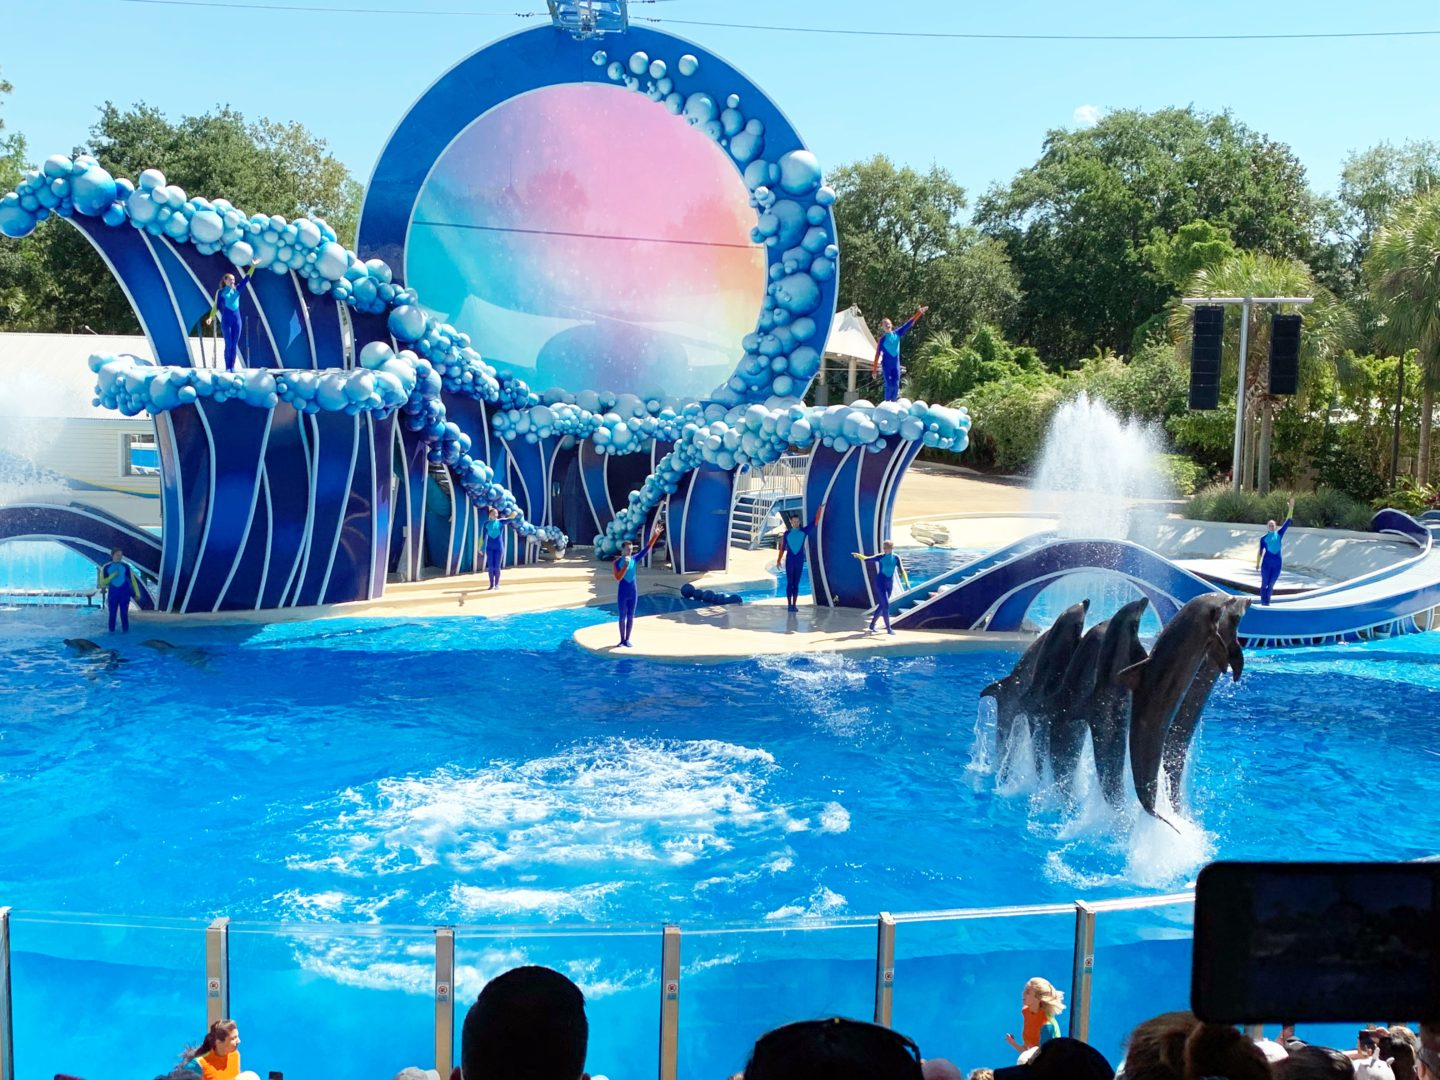 SeaWorld - Things to do for all the family